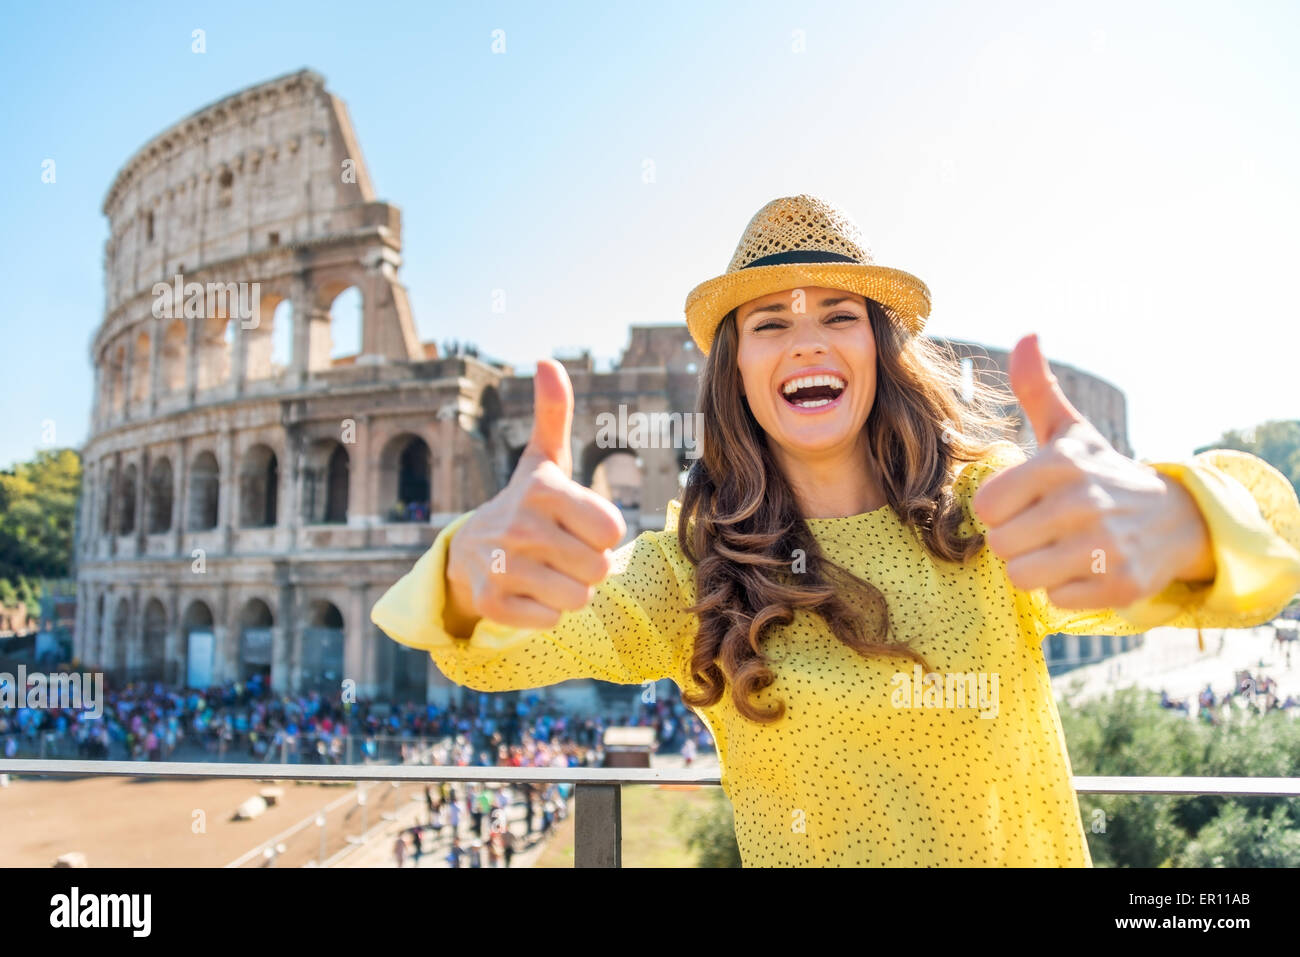 A laughing woman tourist is giving two thumbs up to being a tourist in Rome. In the distance, the Colosseum and - Stock Image